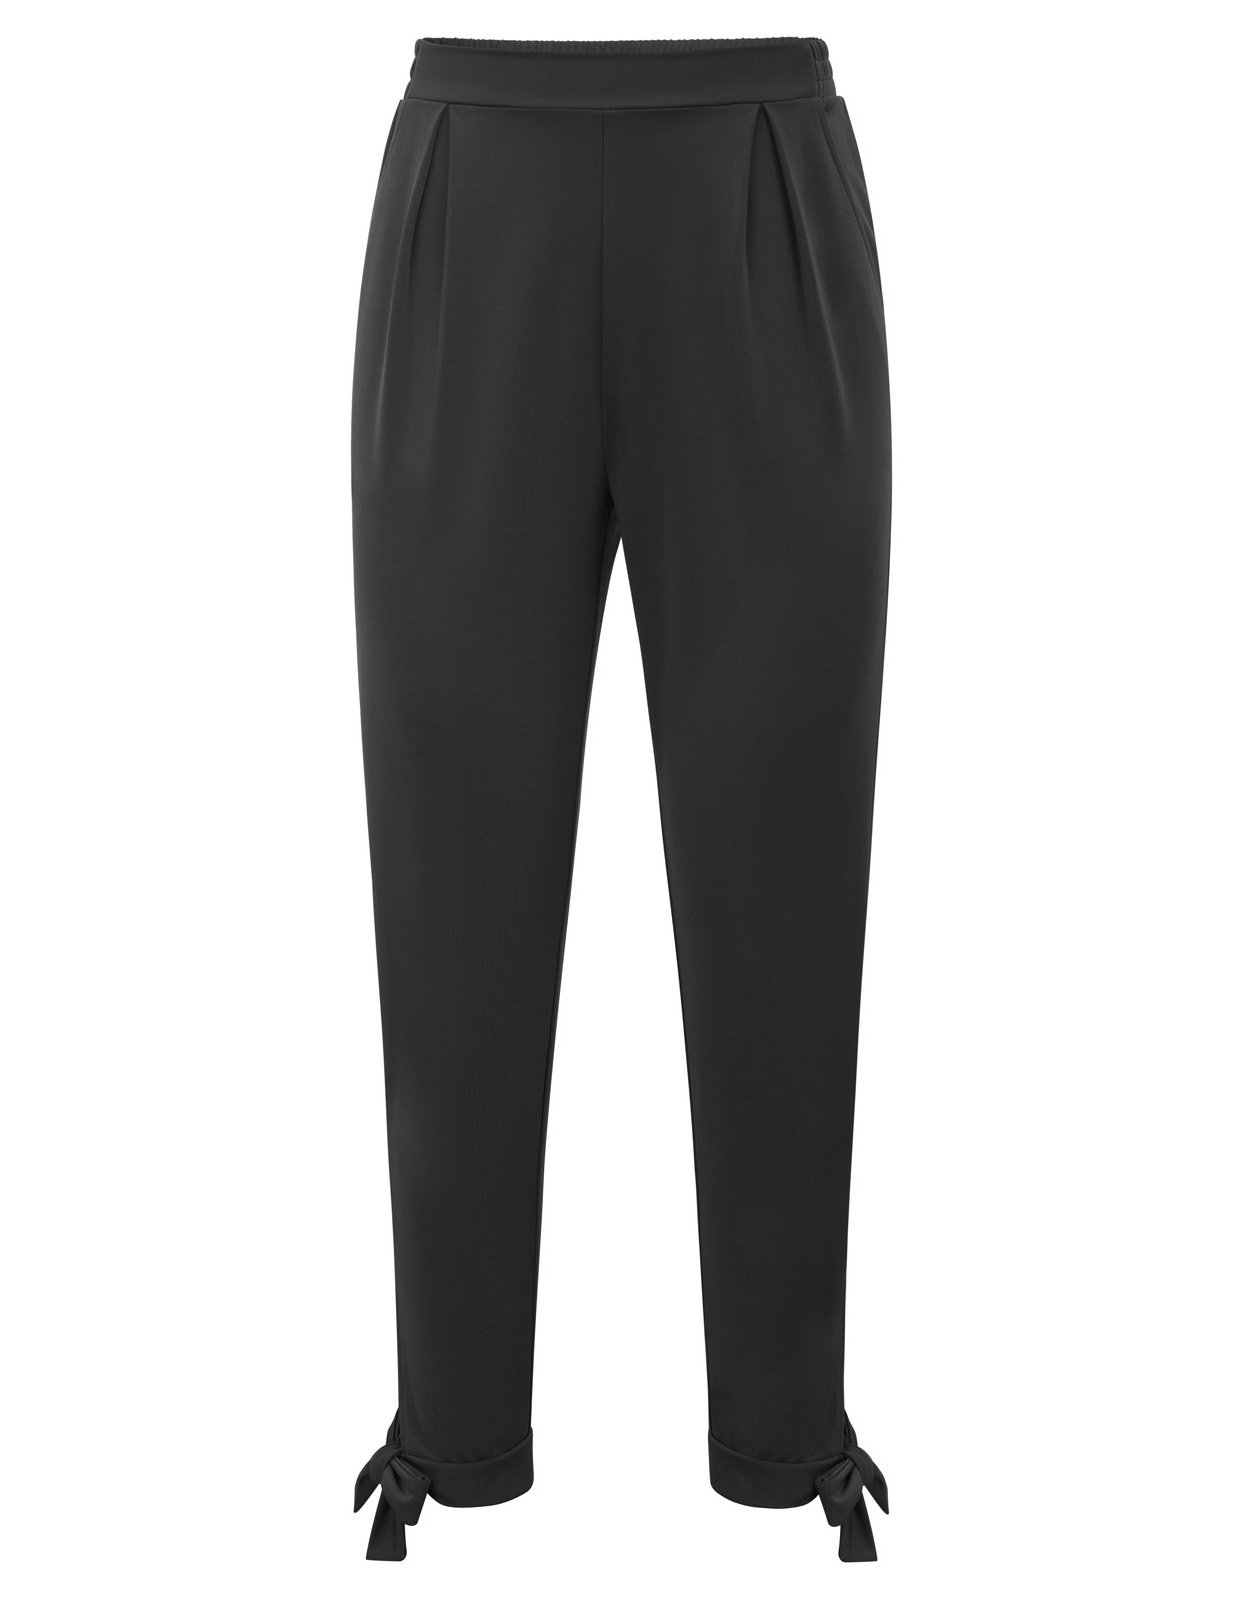 Kate Kasin Flat Front Business Ankle Pants for Women Bow Tie Hem Black M,KK898-1 by Kate Kasin